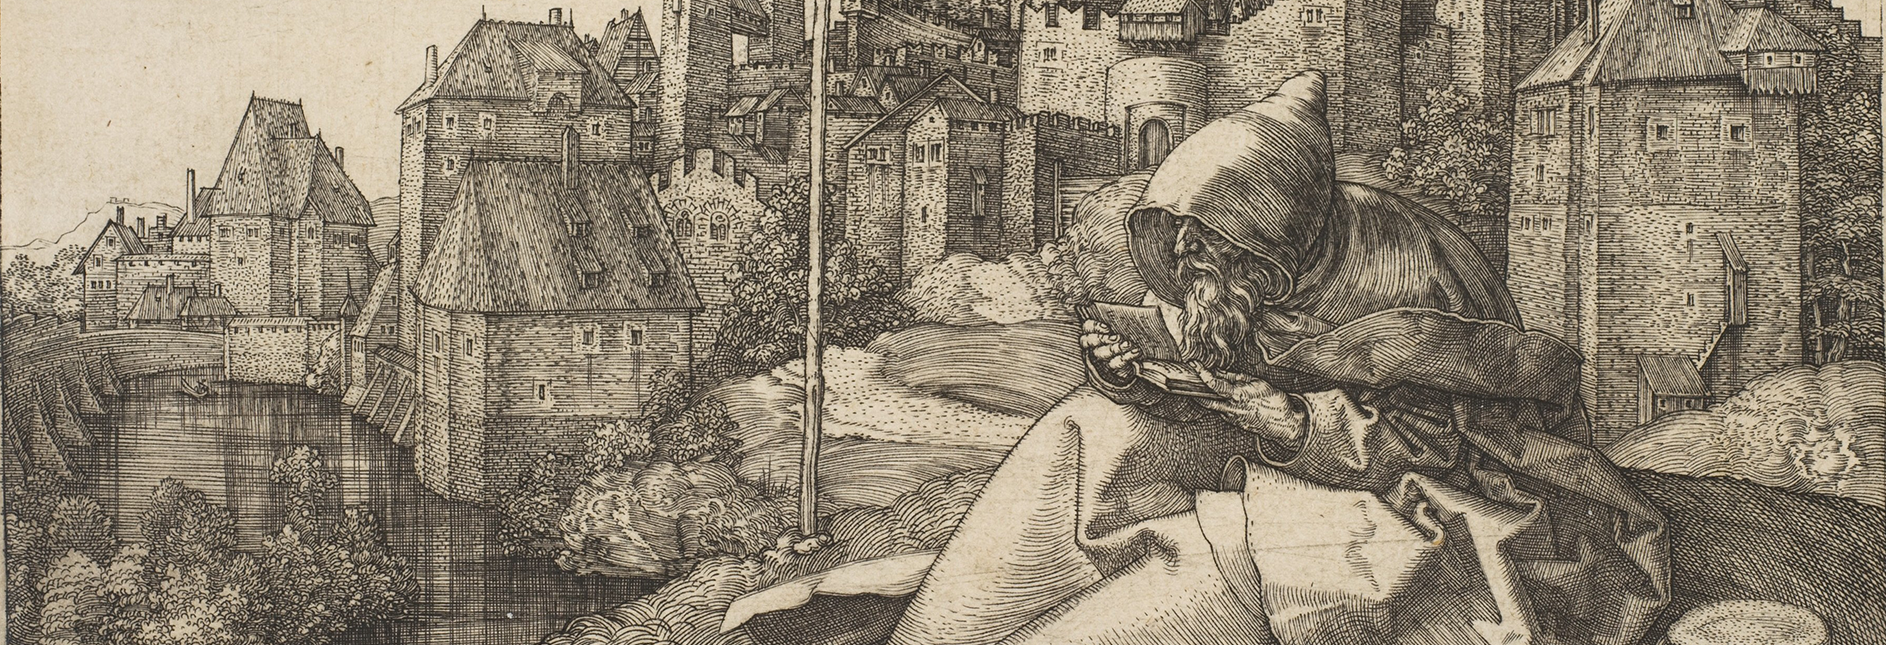 Detail from Albrecht Durer St. Anthony, 1519; engraving on paper, Miami University purchase, 1981.72